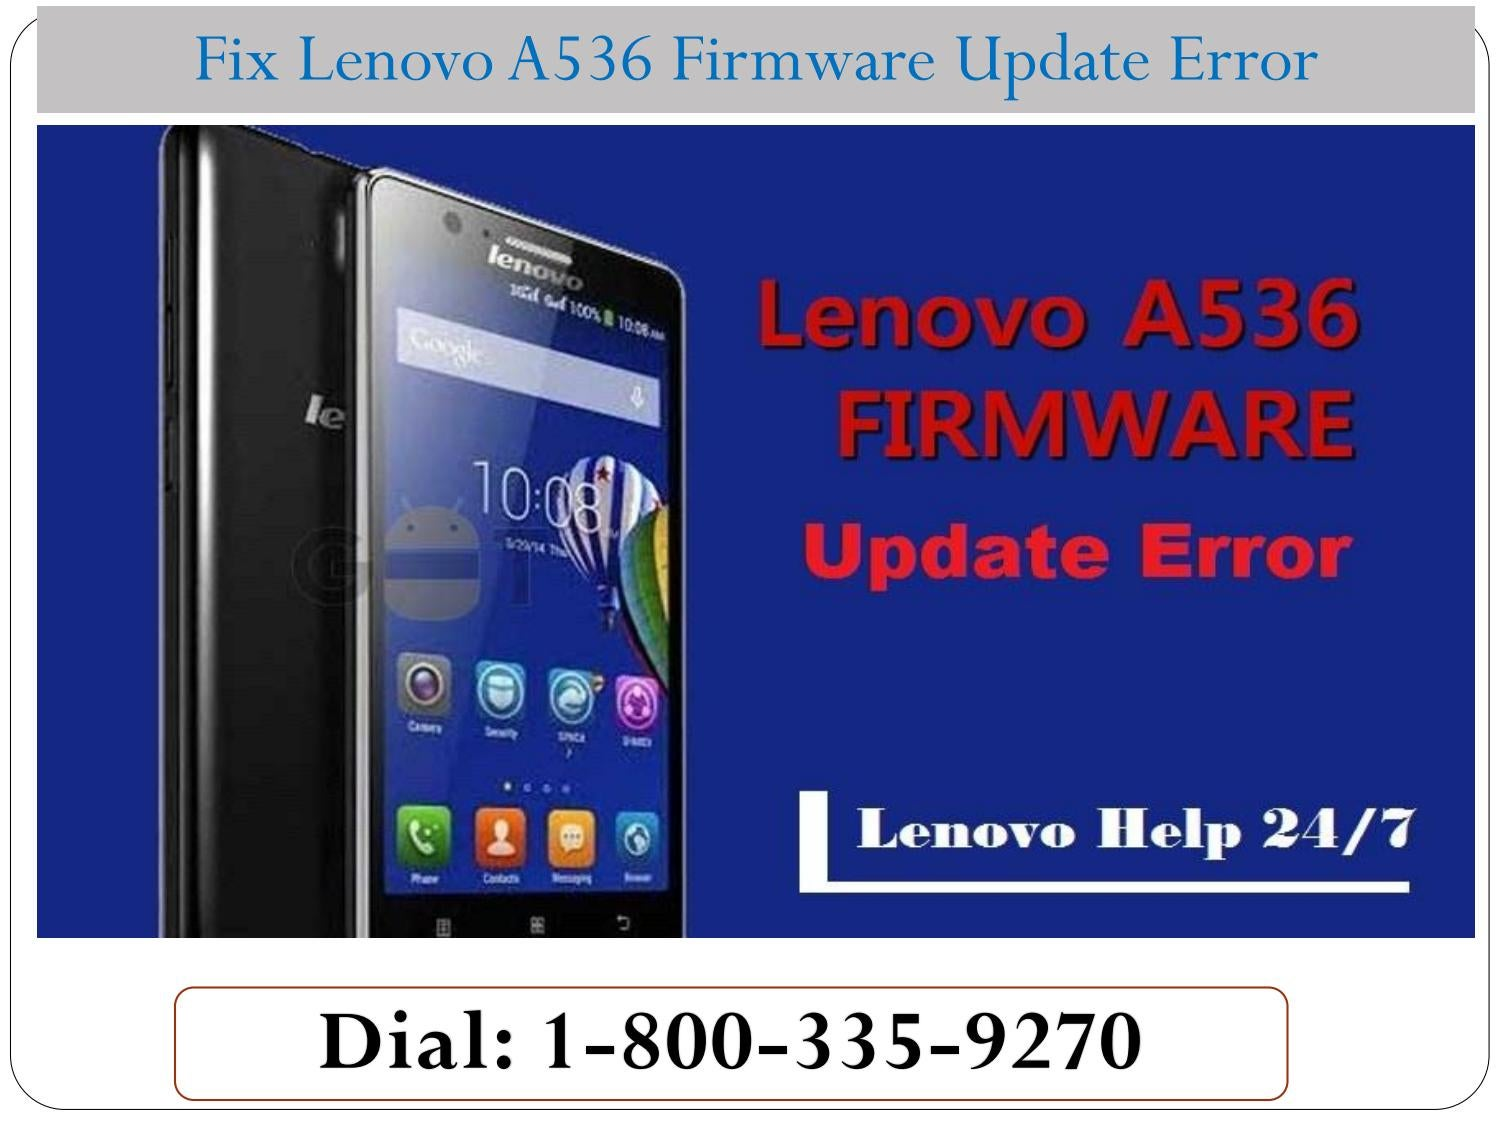 How To Fix Lenovo A536 Firmware Update Error? 1800-335-9270